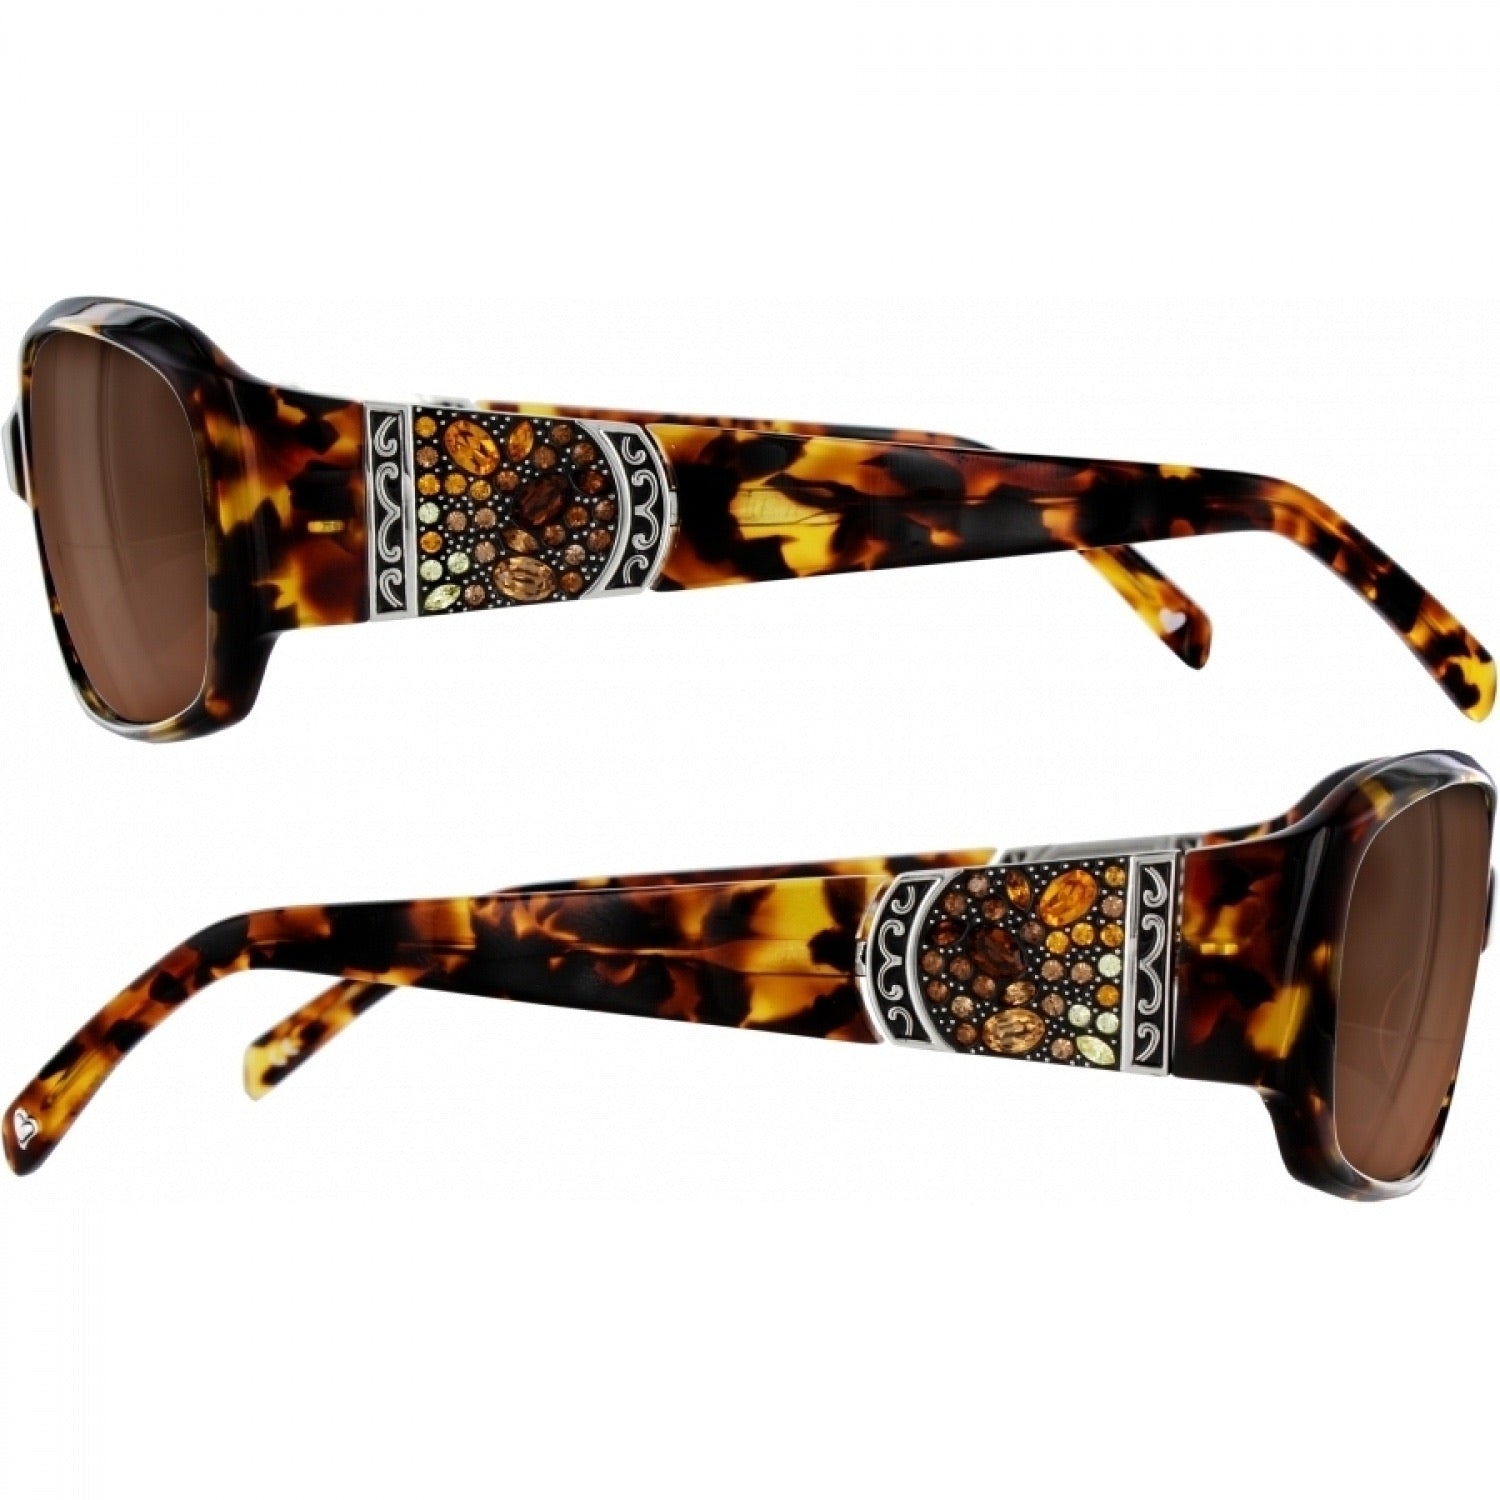 Brighton Crystal Voyage Sunglasses